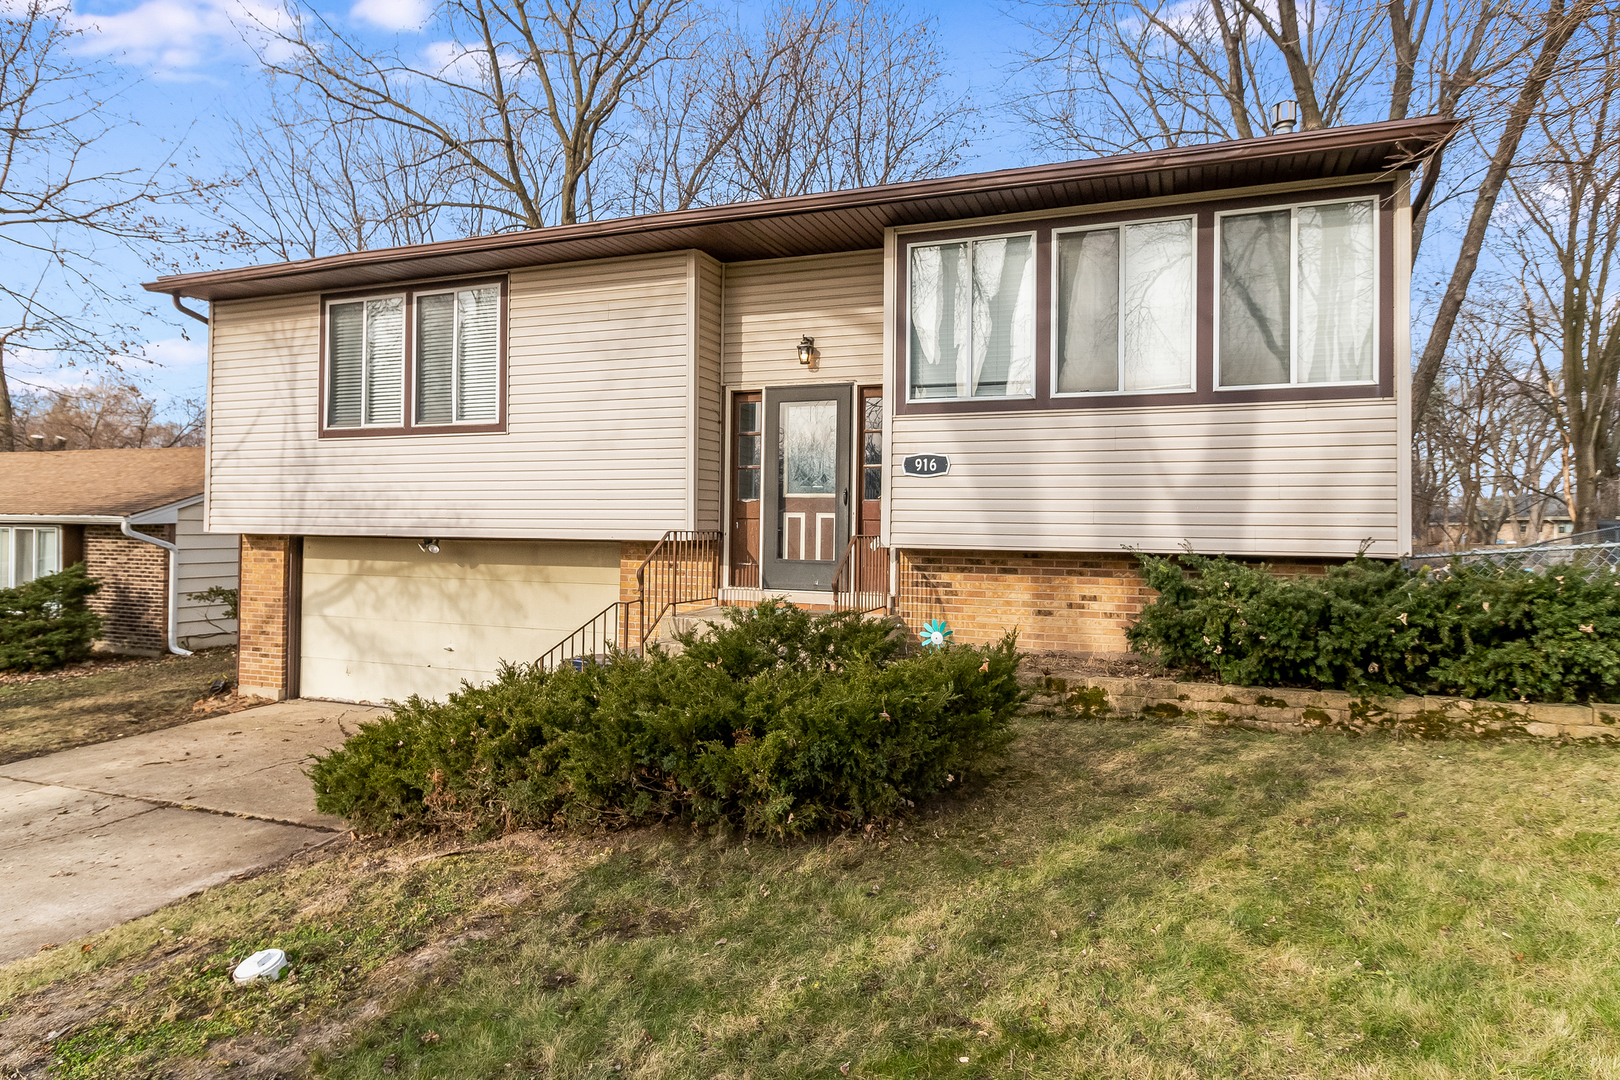 916 Carl Avenue, Elgin in Cook County, IL 60120 Home for Sale